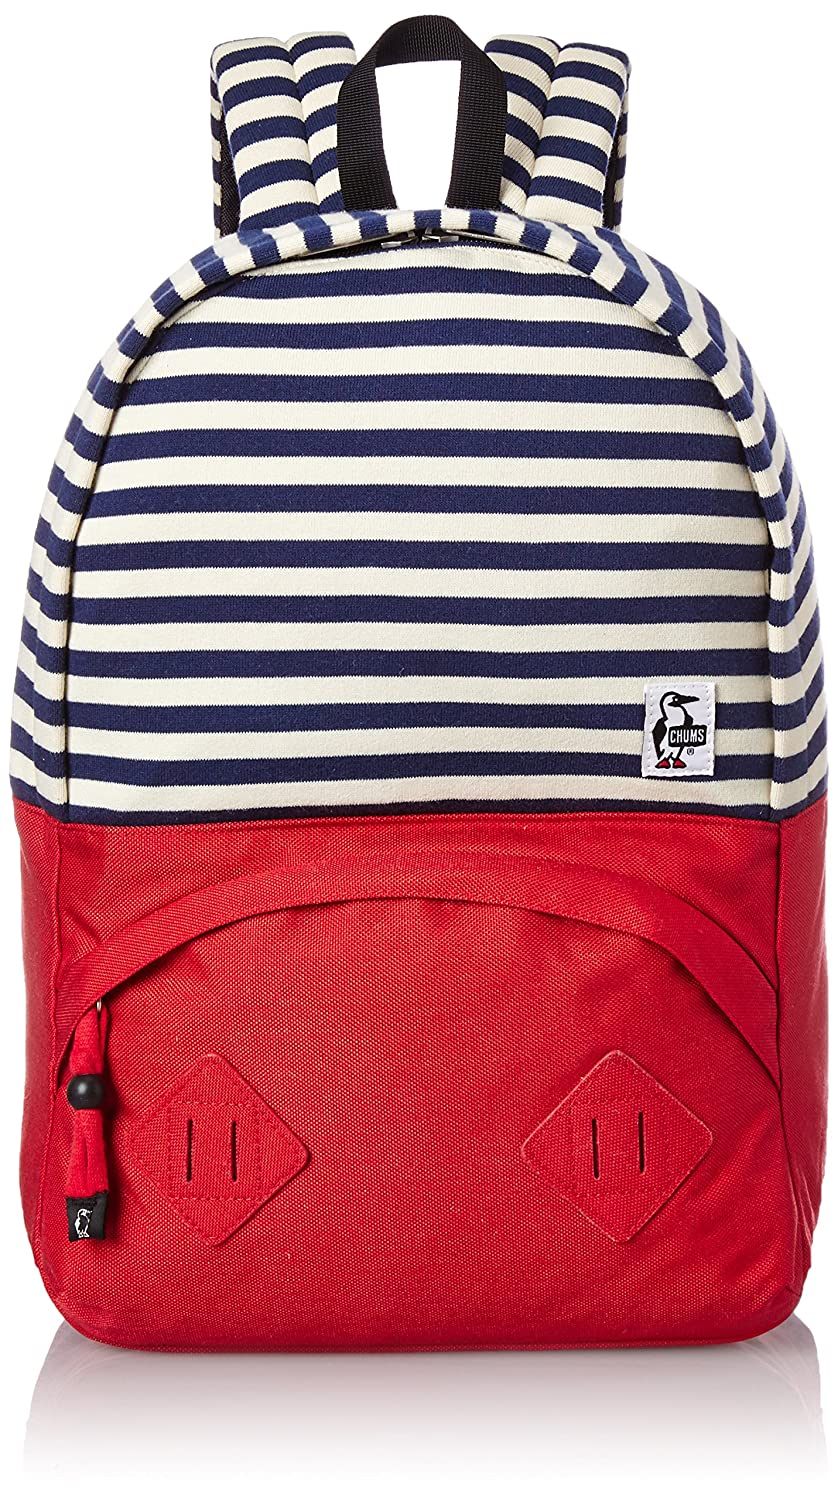 [チャムス] リュック Mariposa Day Pack Sweat Nylon CH60-0912 B0116NIMKO Navy Natural/Tomato Navy Natural/Tomato